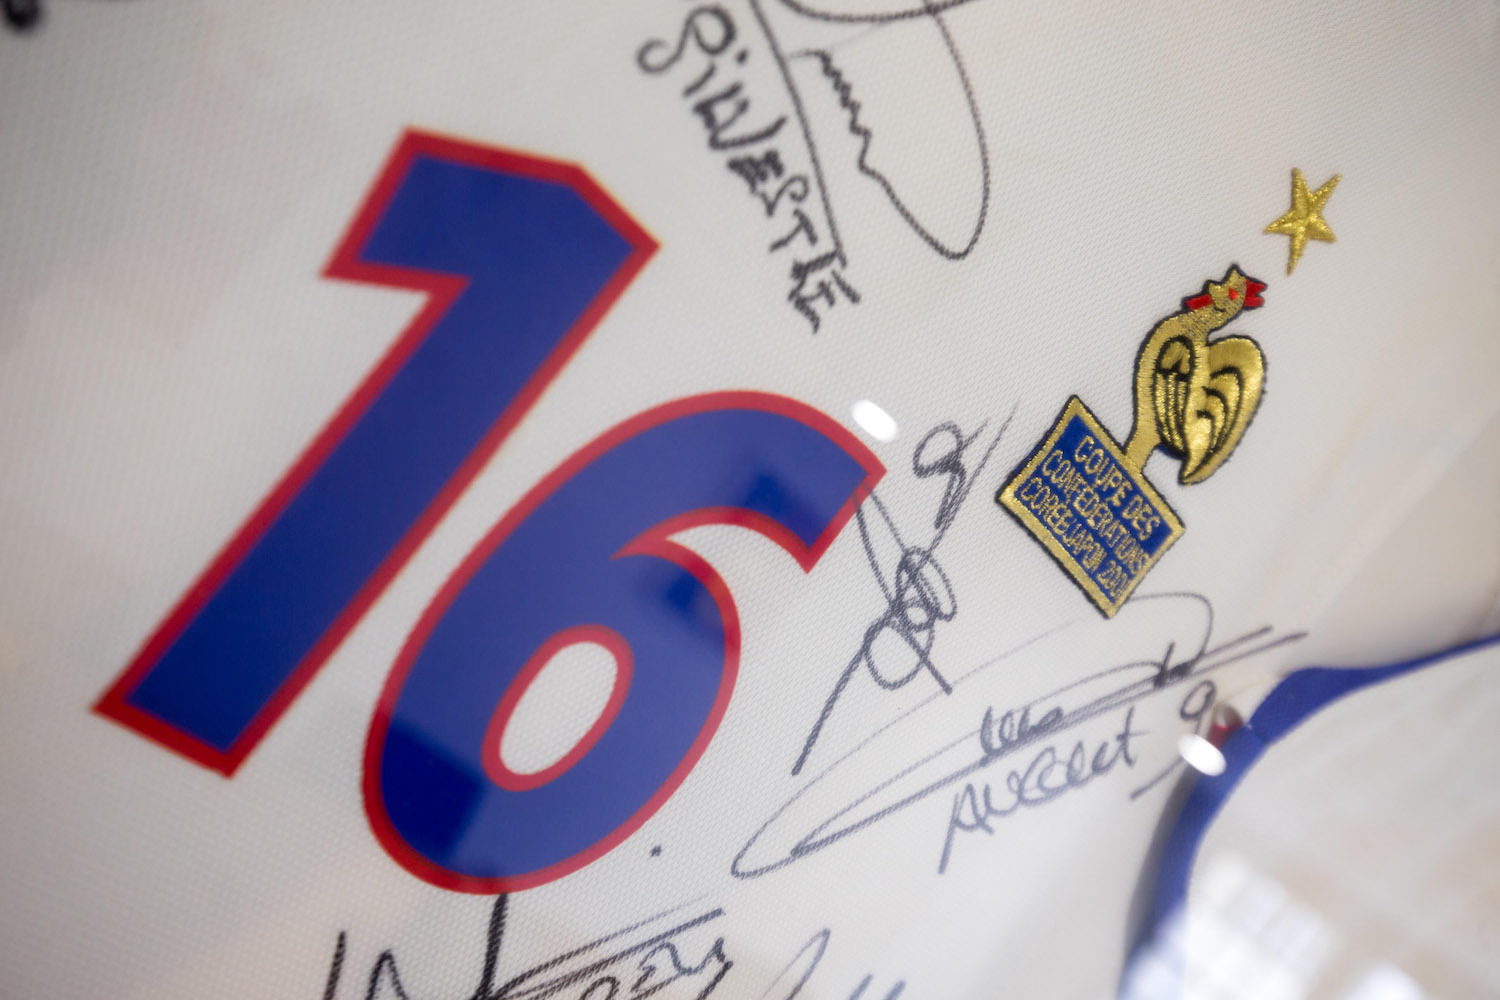 Zoom Maillot signatures.jpg